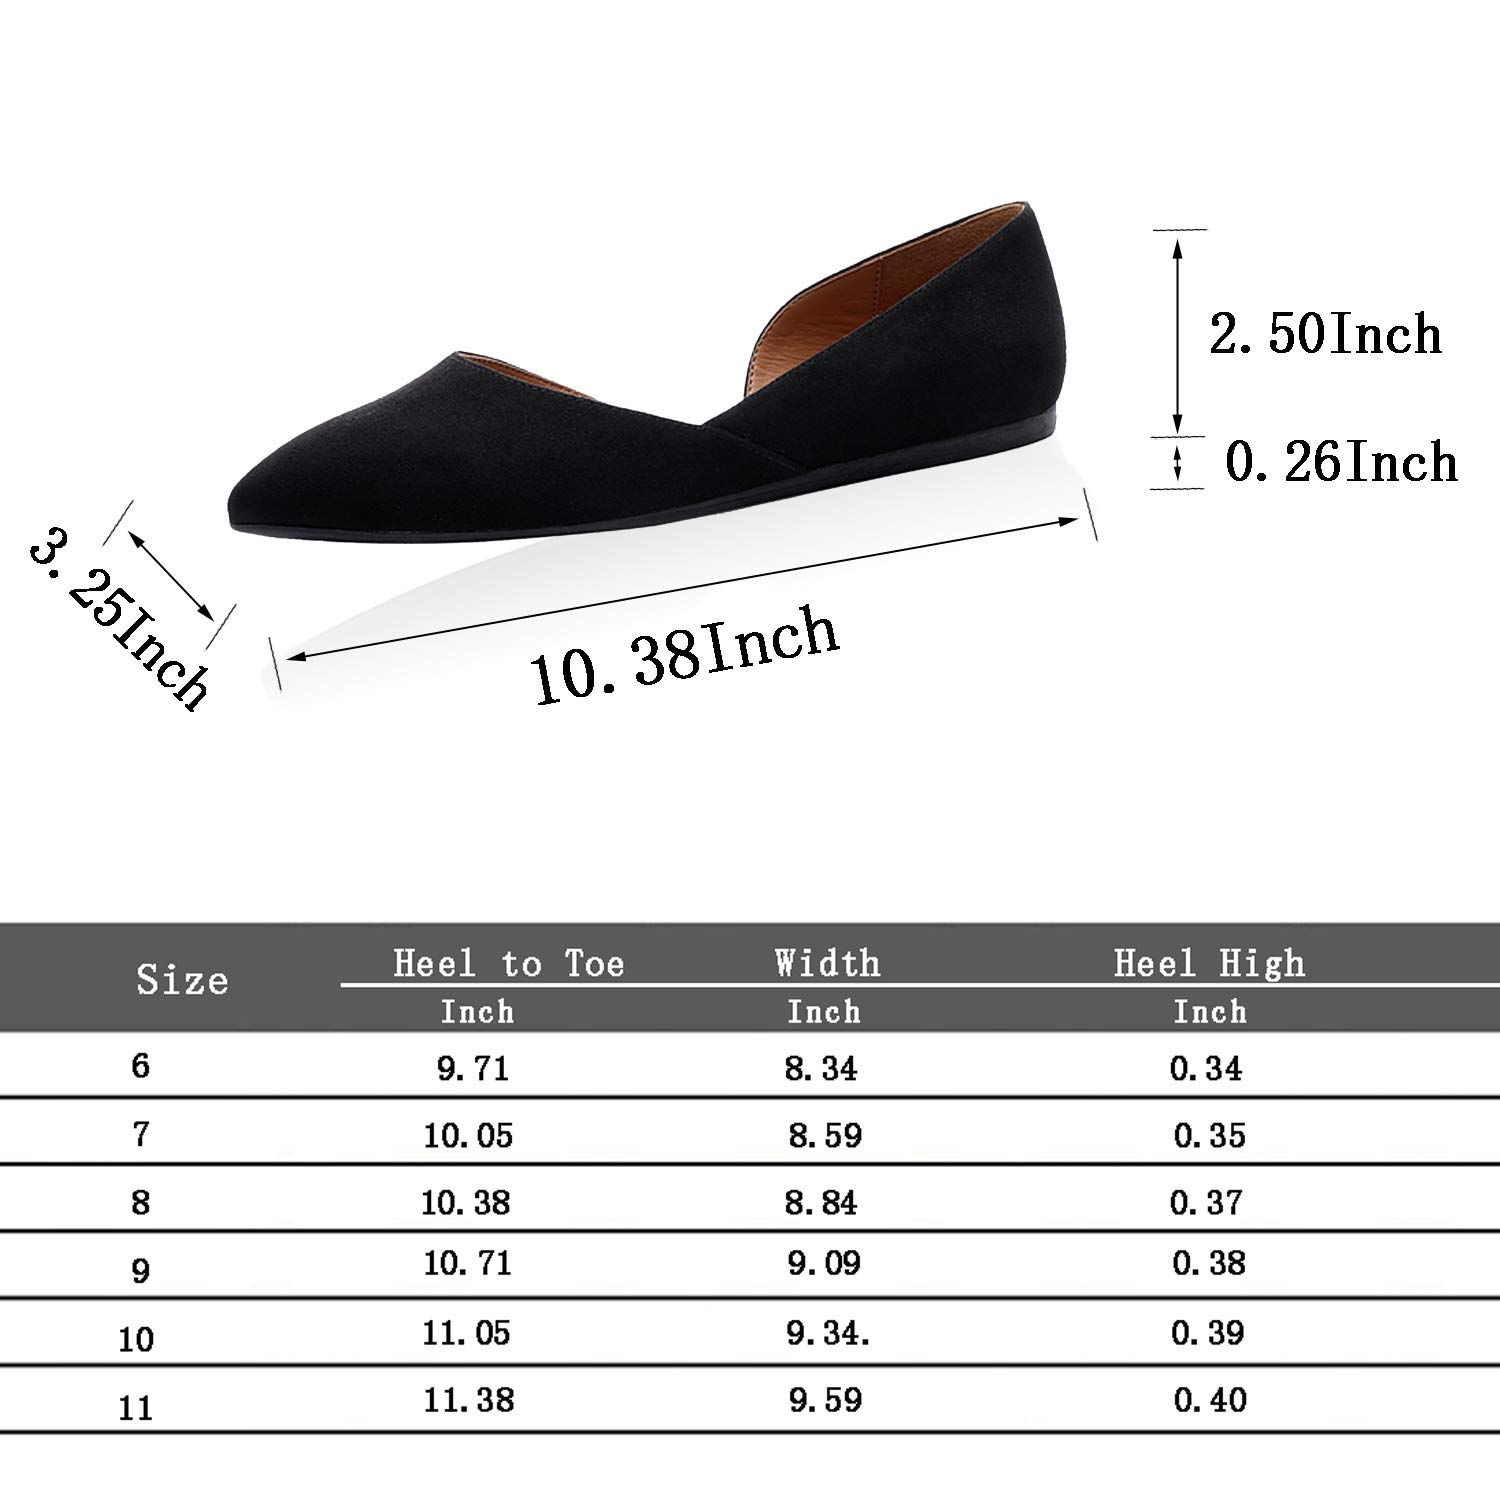 AOMO LOVE Womens Shoes Faux Suede Casual Light Pointed Toe Ballet Slip On Comfort Flats Shoes